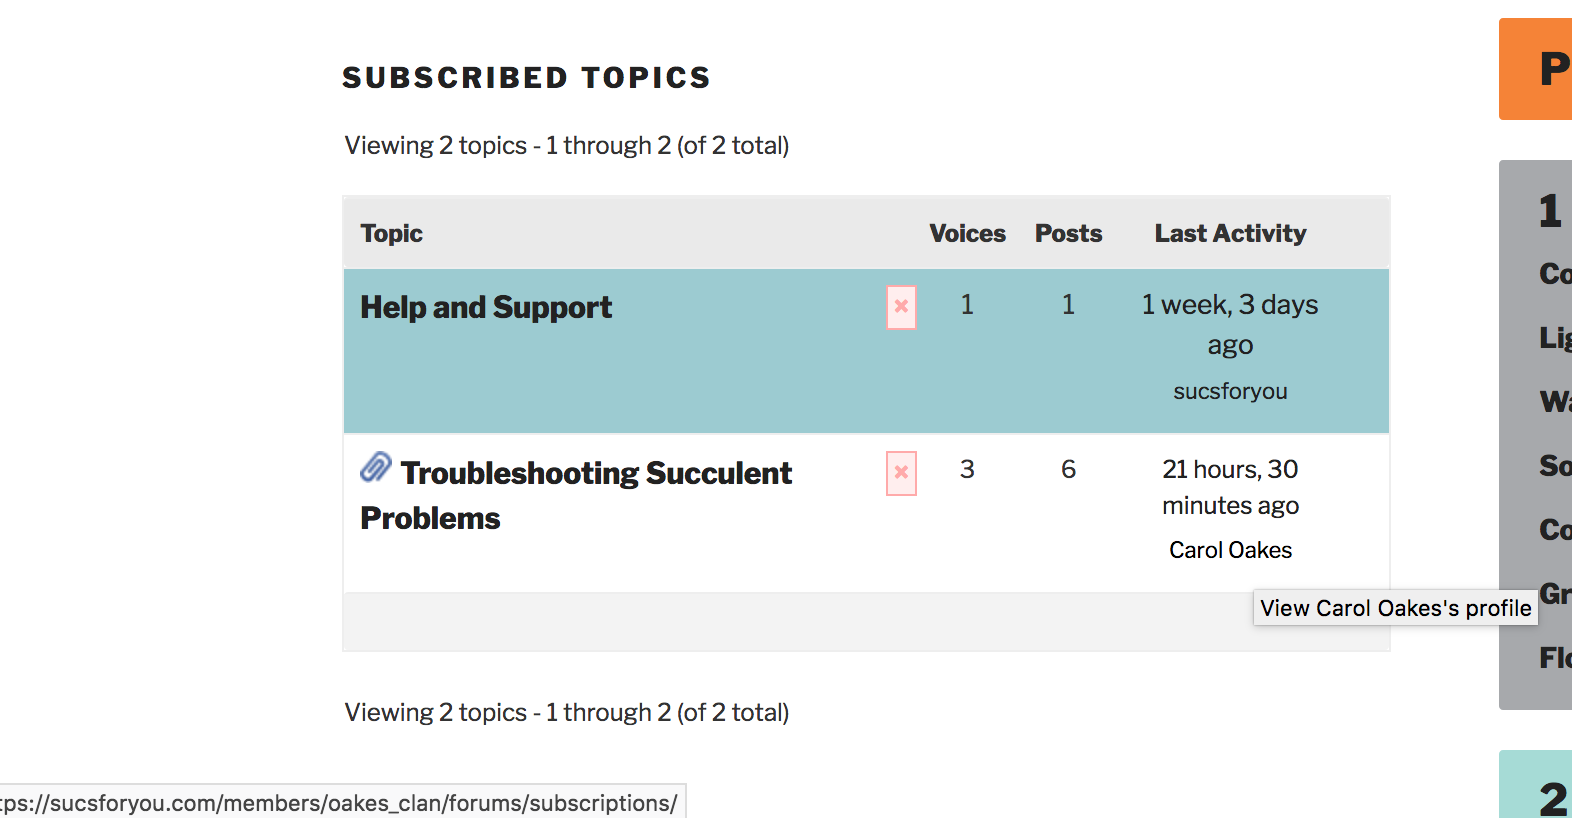 Subscription tab latest activity author adds /forums/subscriptions/ to 'view profile' url